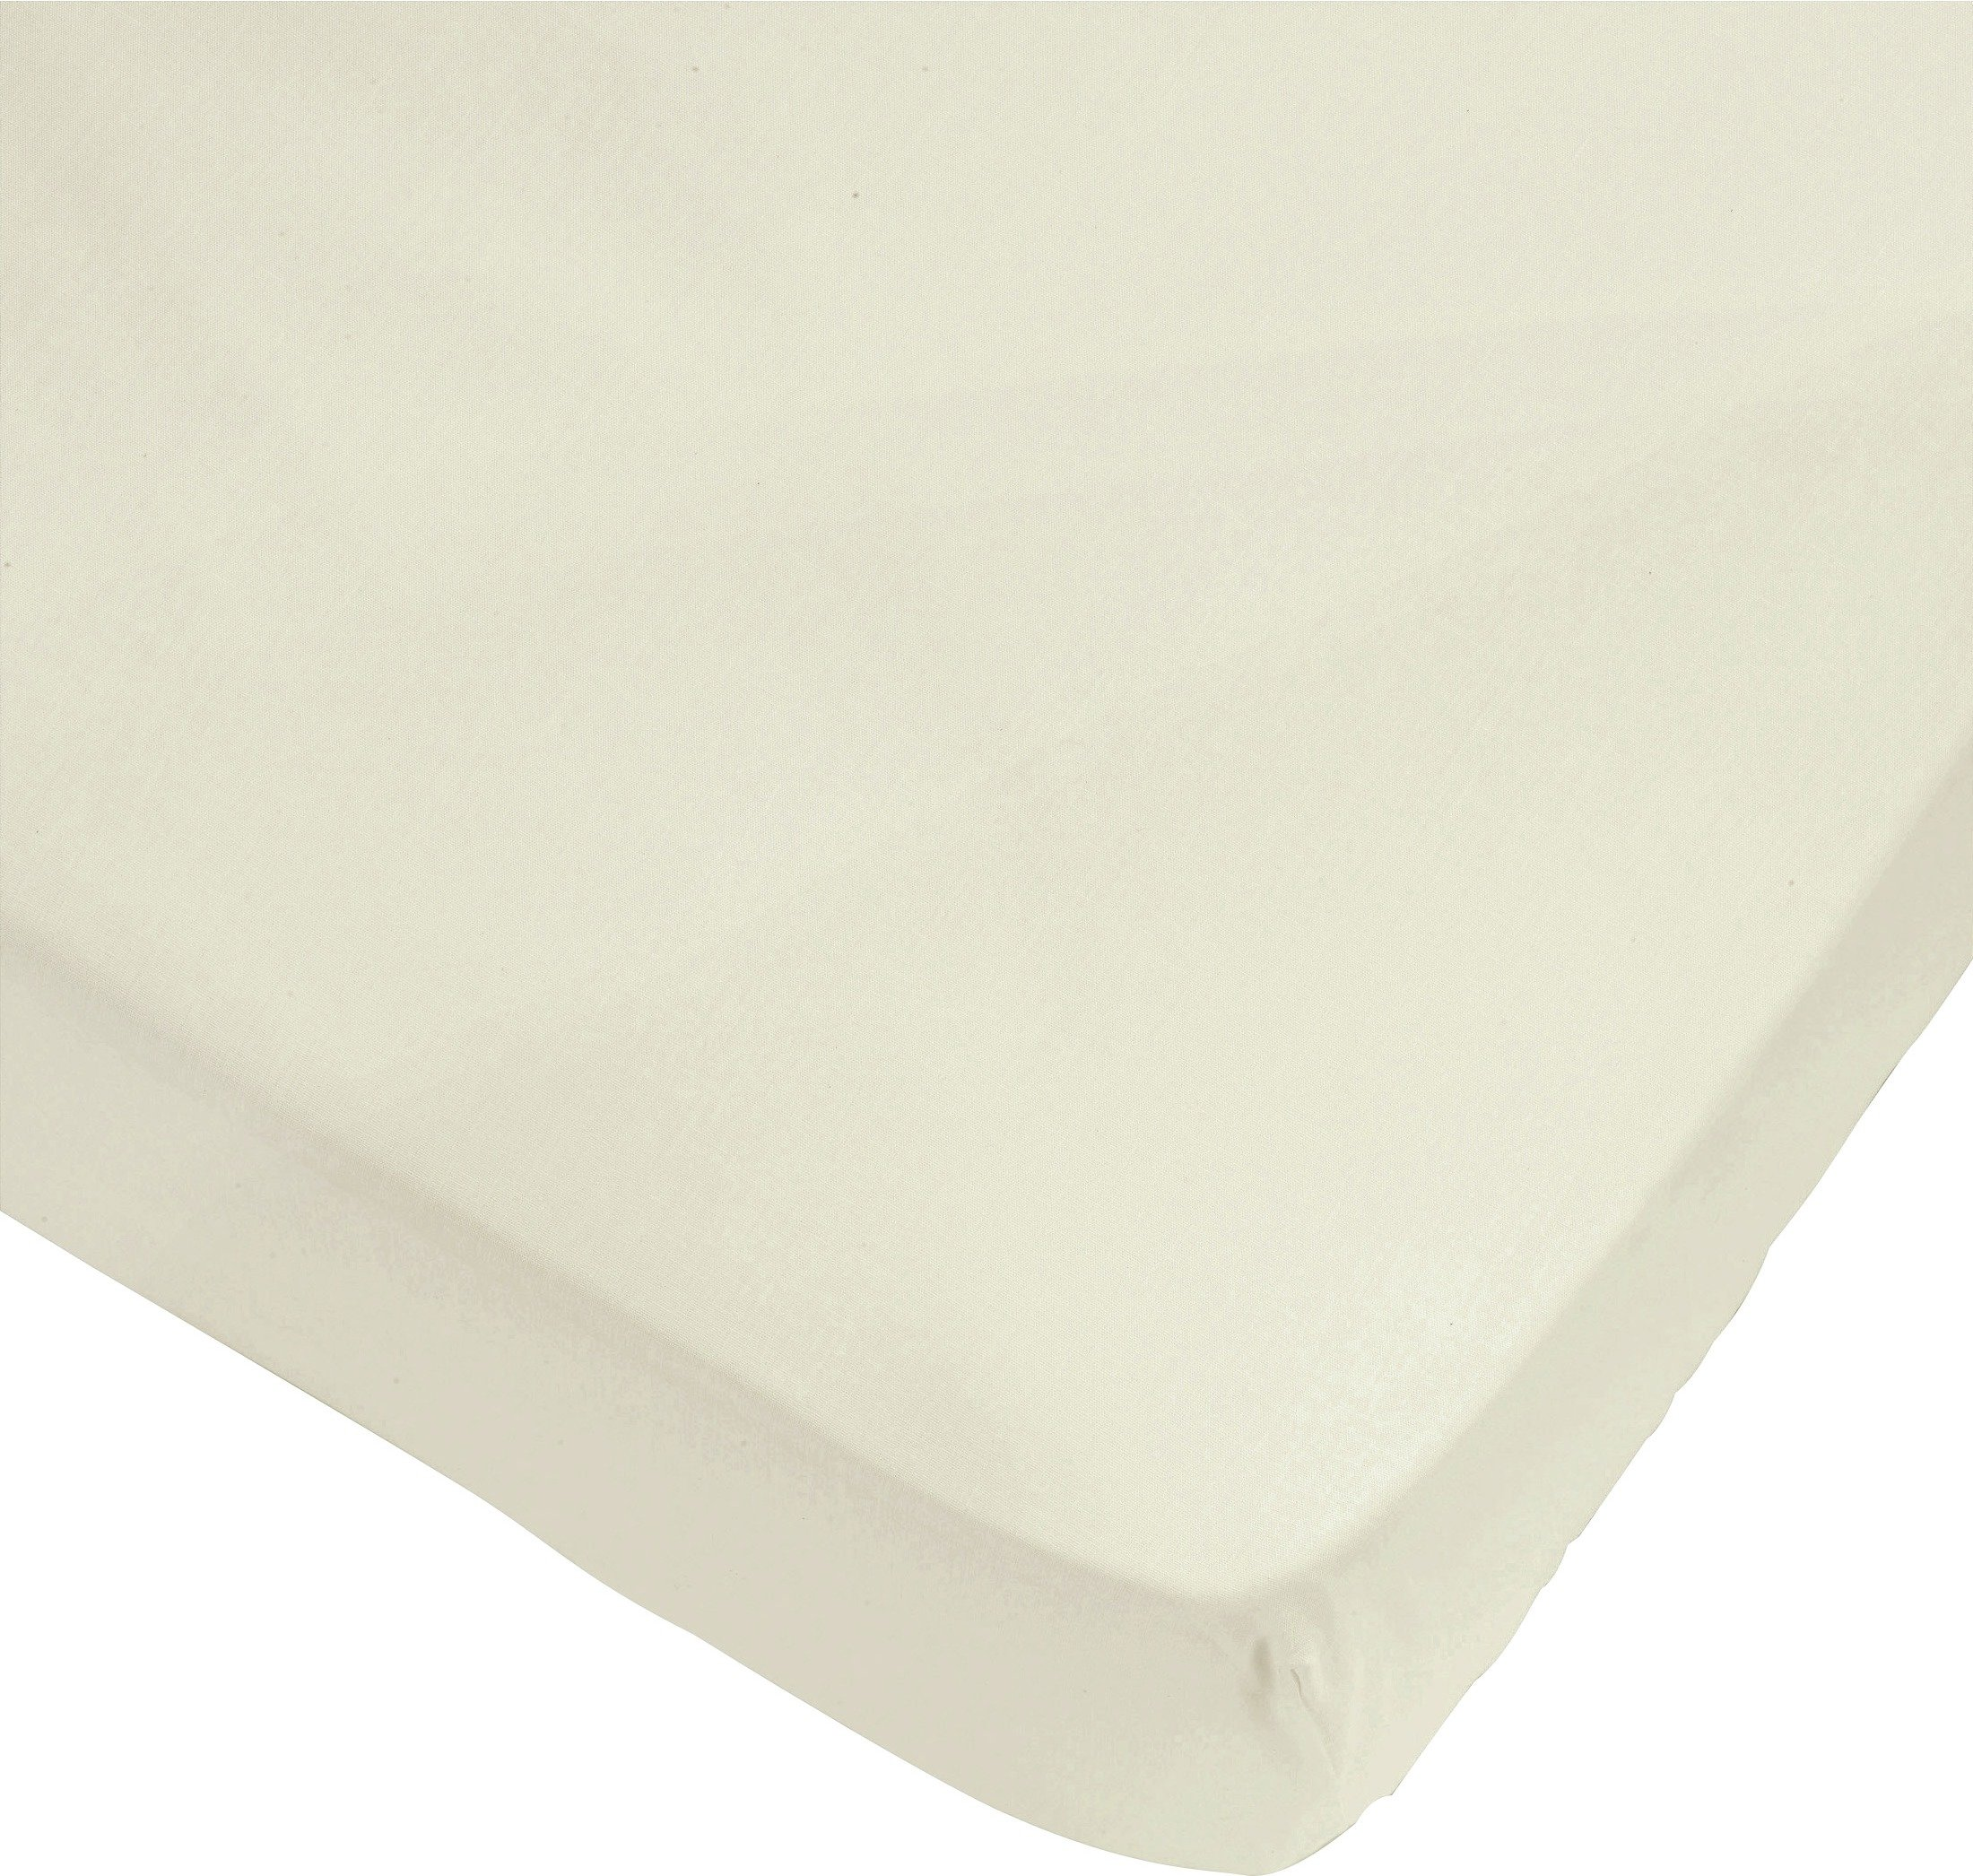 ColourMatch - Cotton Cream Fitted - Sheet - Double